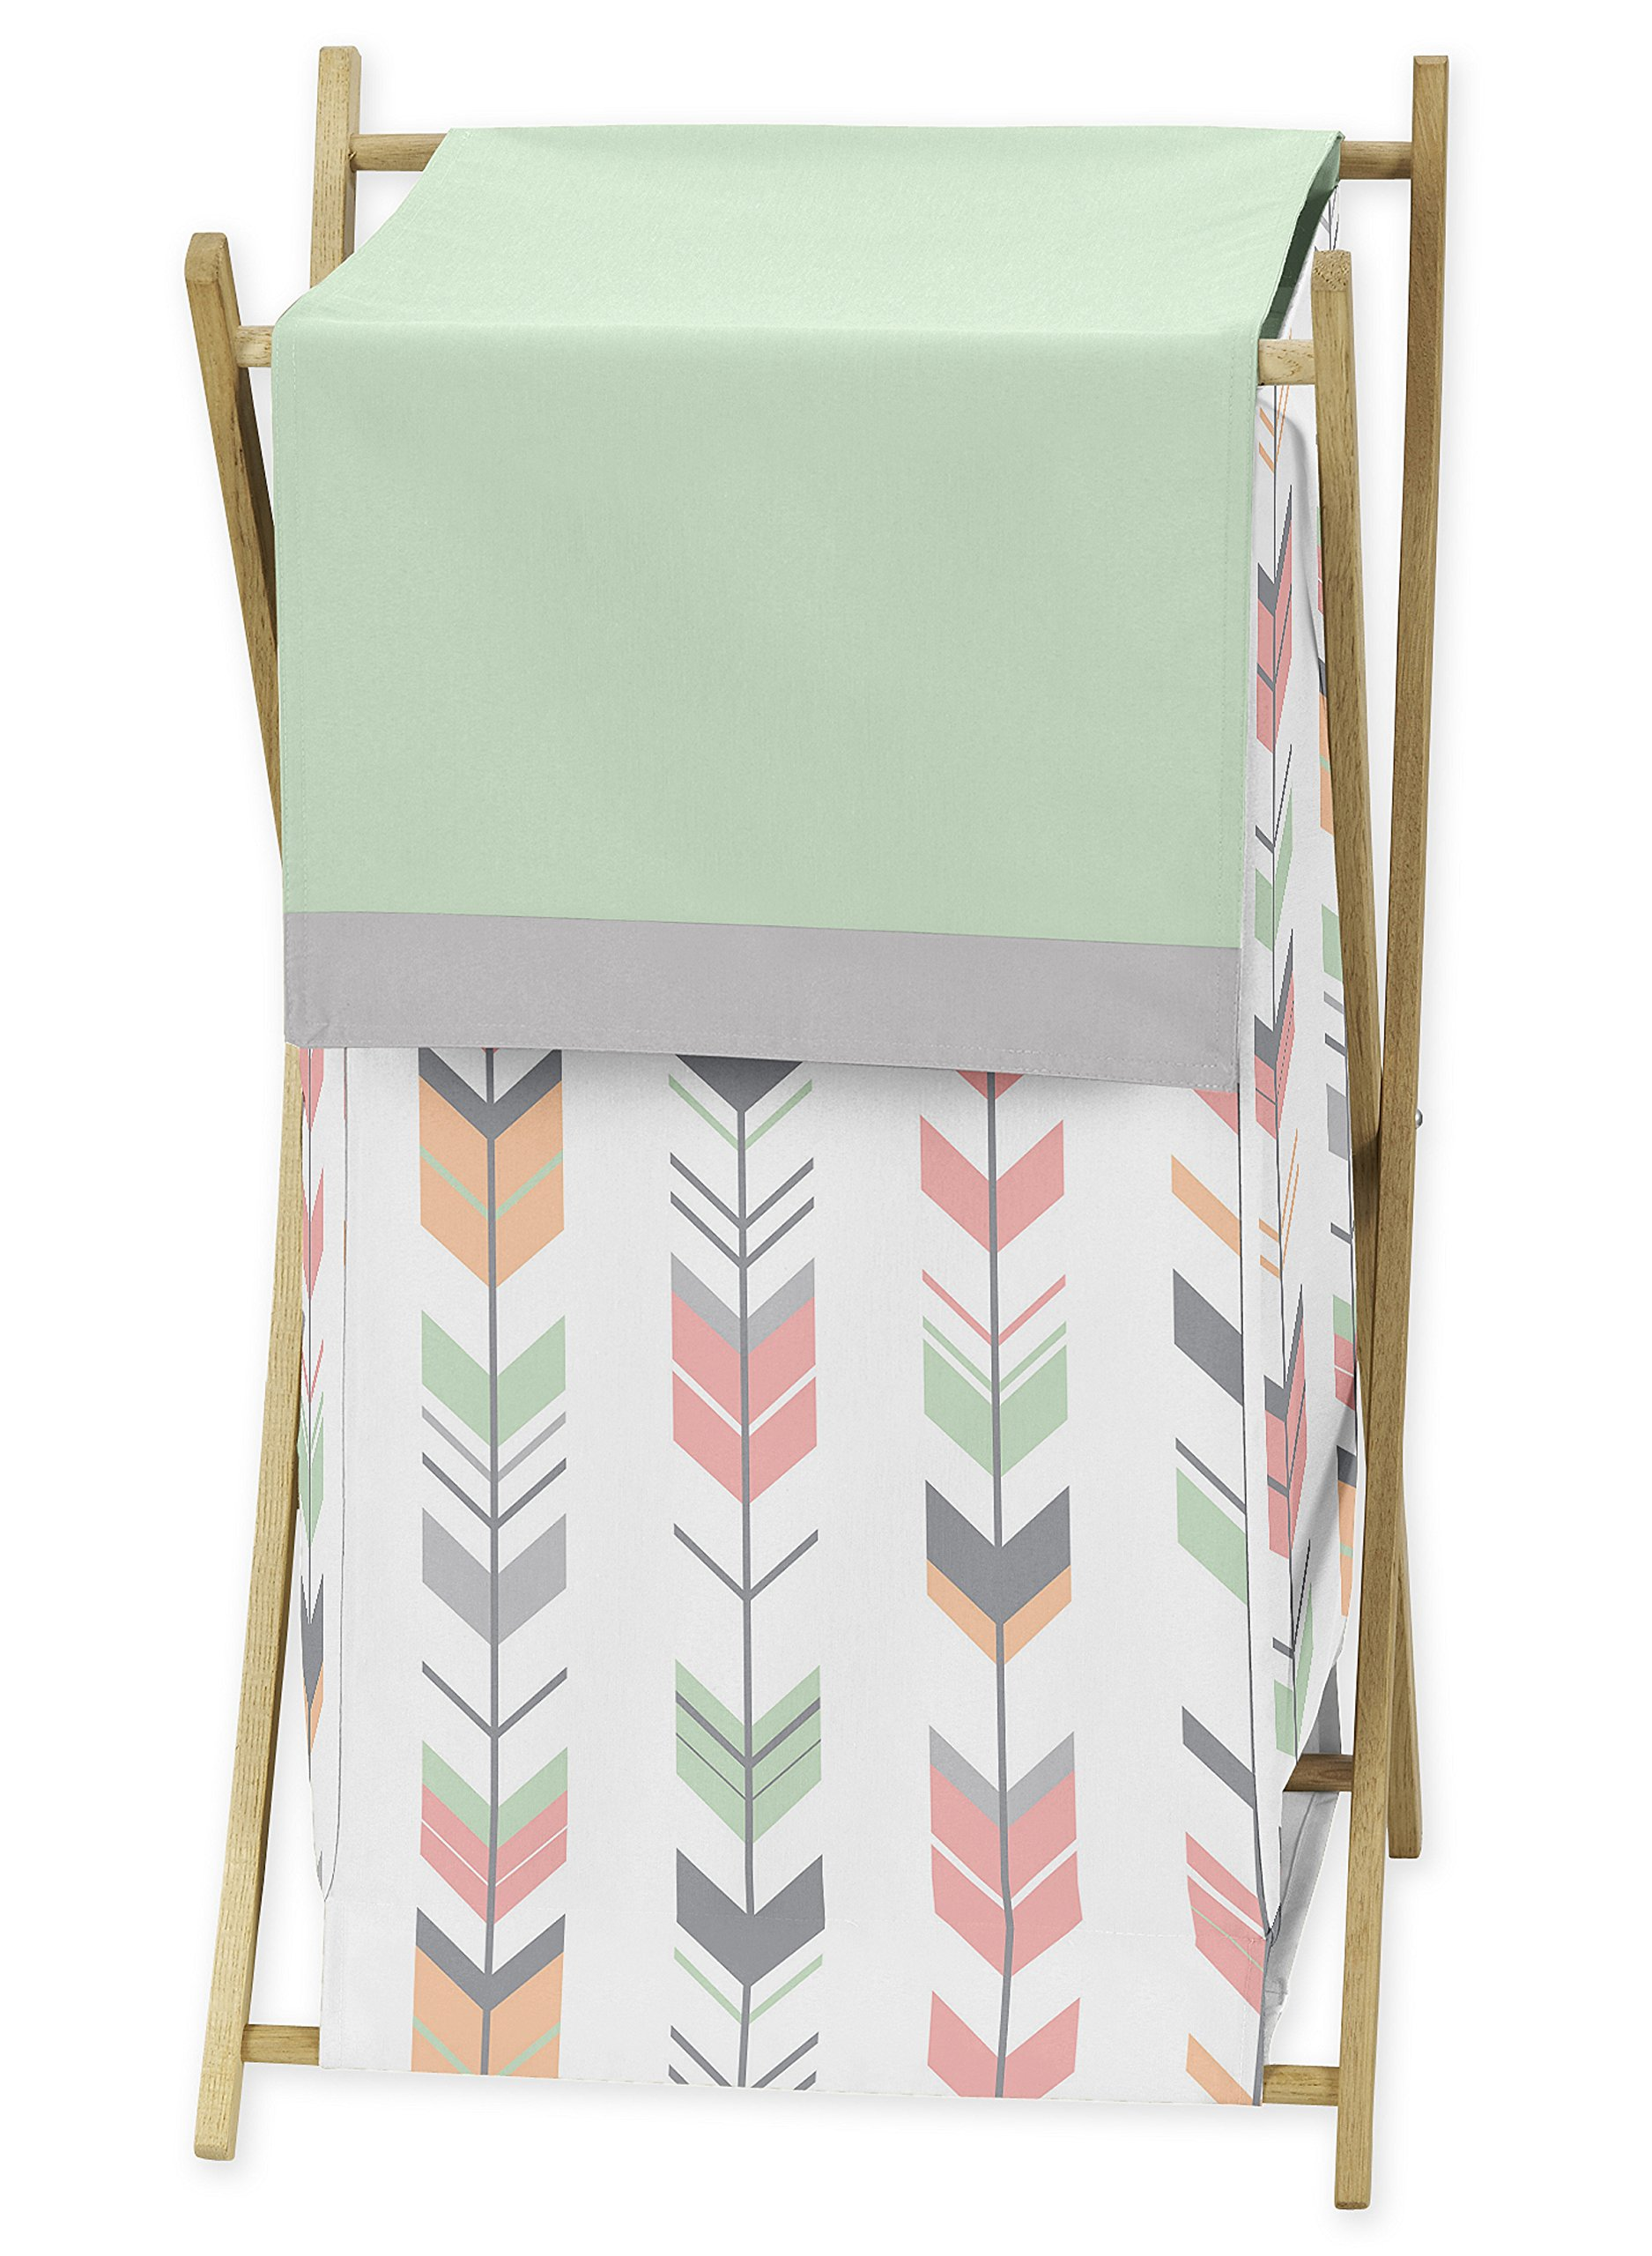 Sweet Jojo Designs Baby/Kids Clothes Laundry Hamper for Grey, Coral and Mint Woodland Arrow Girl Bedding Sets by Sweet Jojo Designs